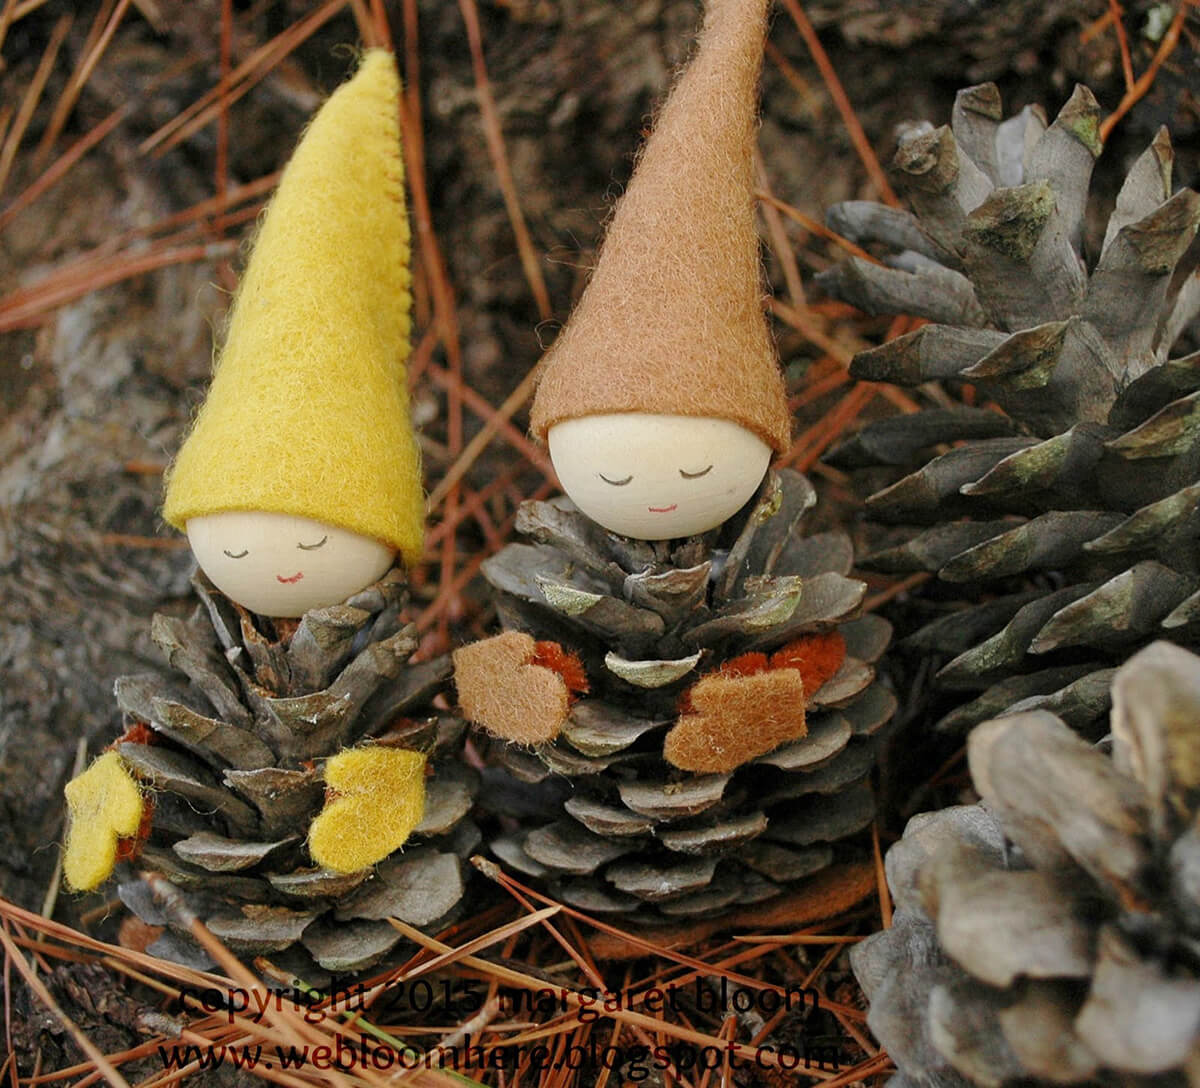 Adorable Crafted Sleepy Pinecone Gnomes